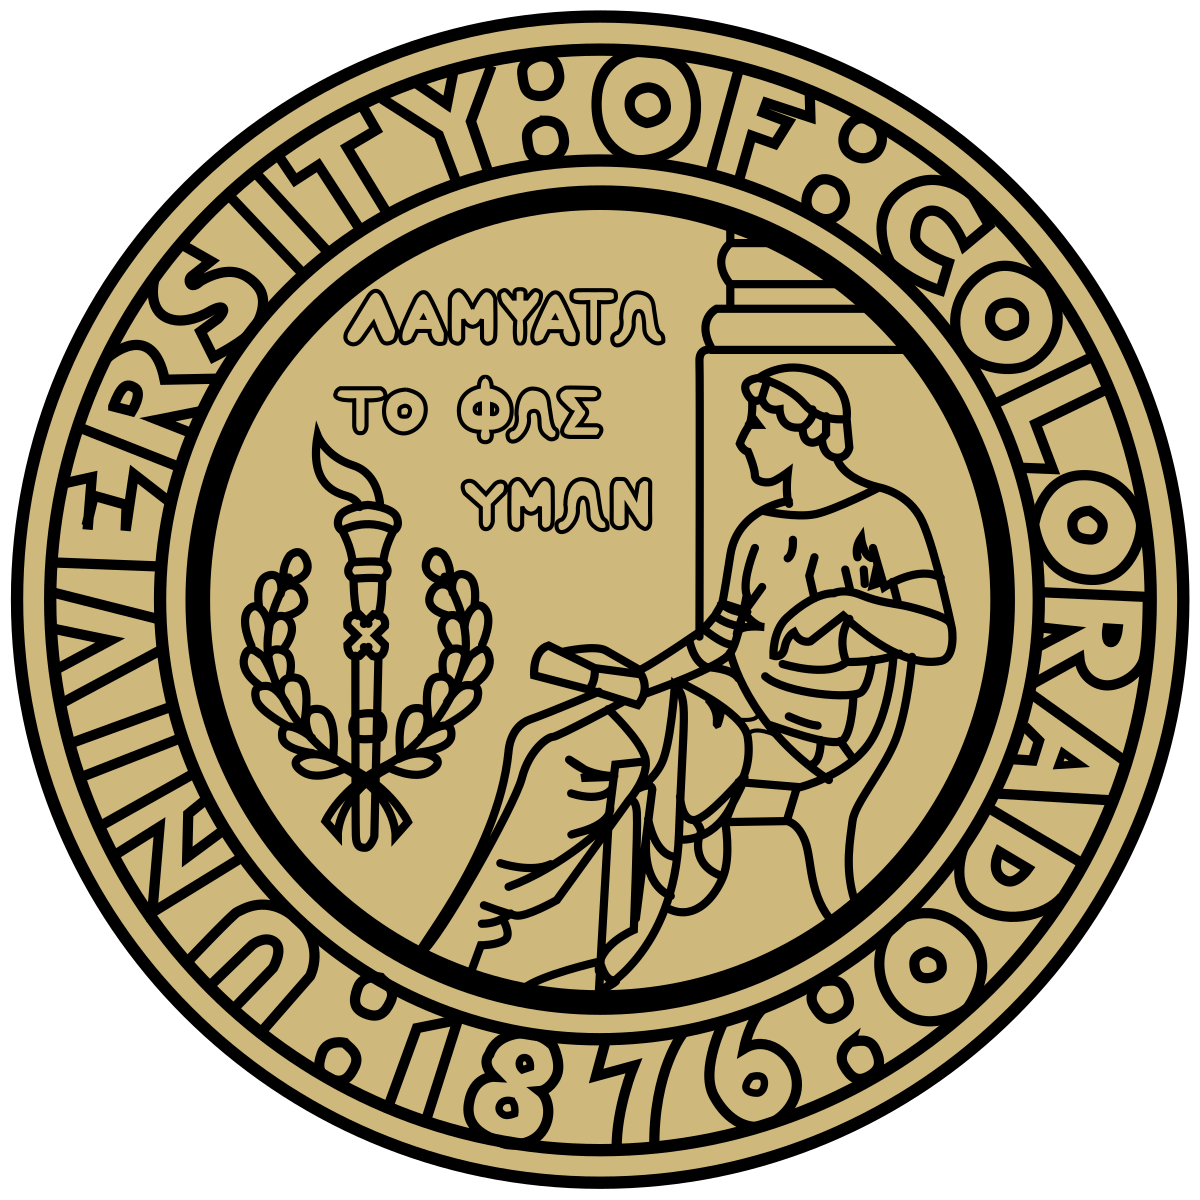 University of colorado boulder logo png. Wikipedia